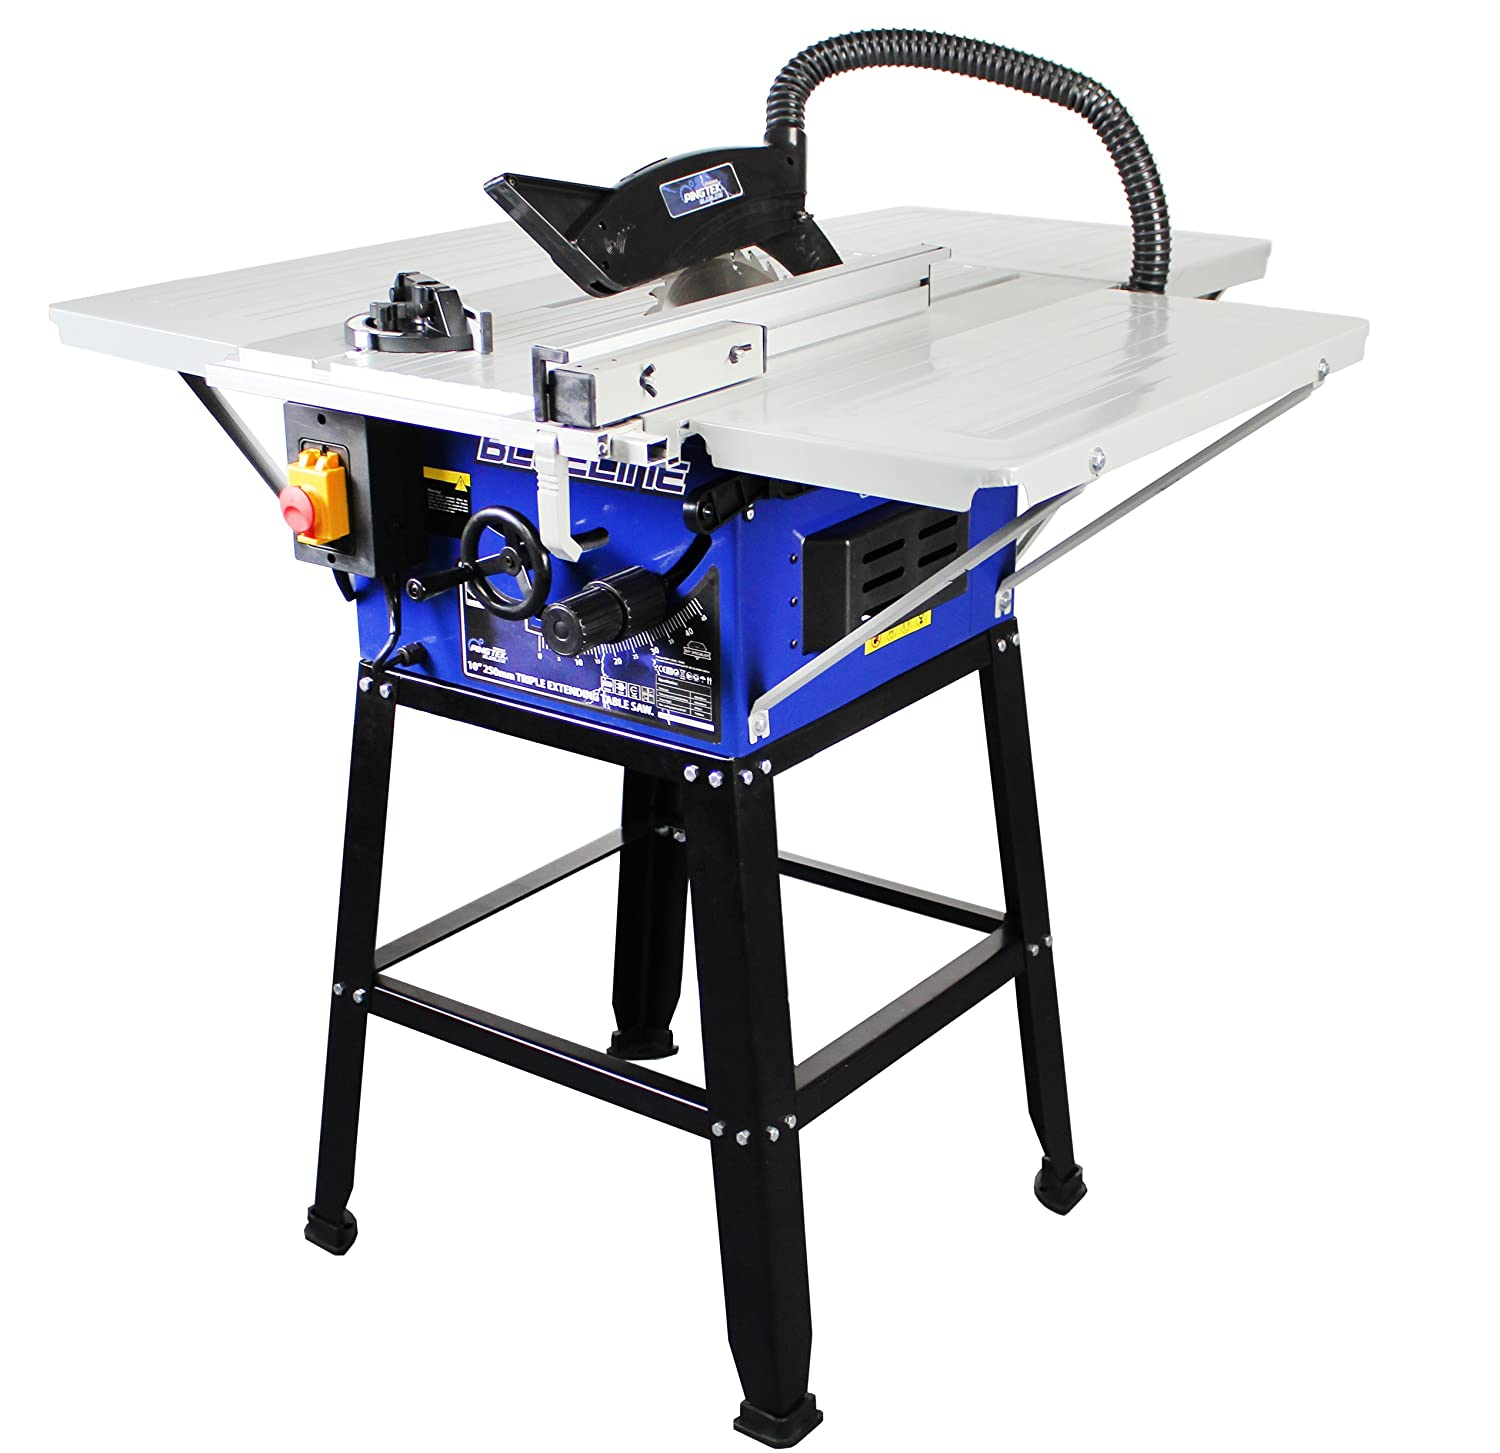 Easy Table Saw Cross Cut Sled General Woodworking